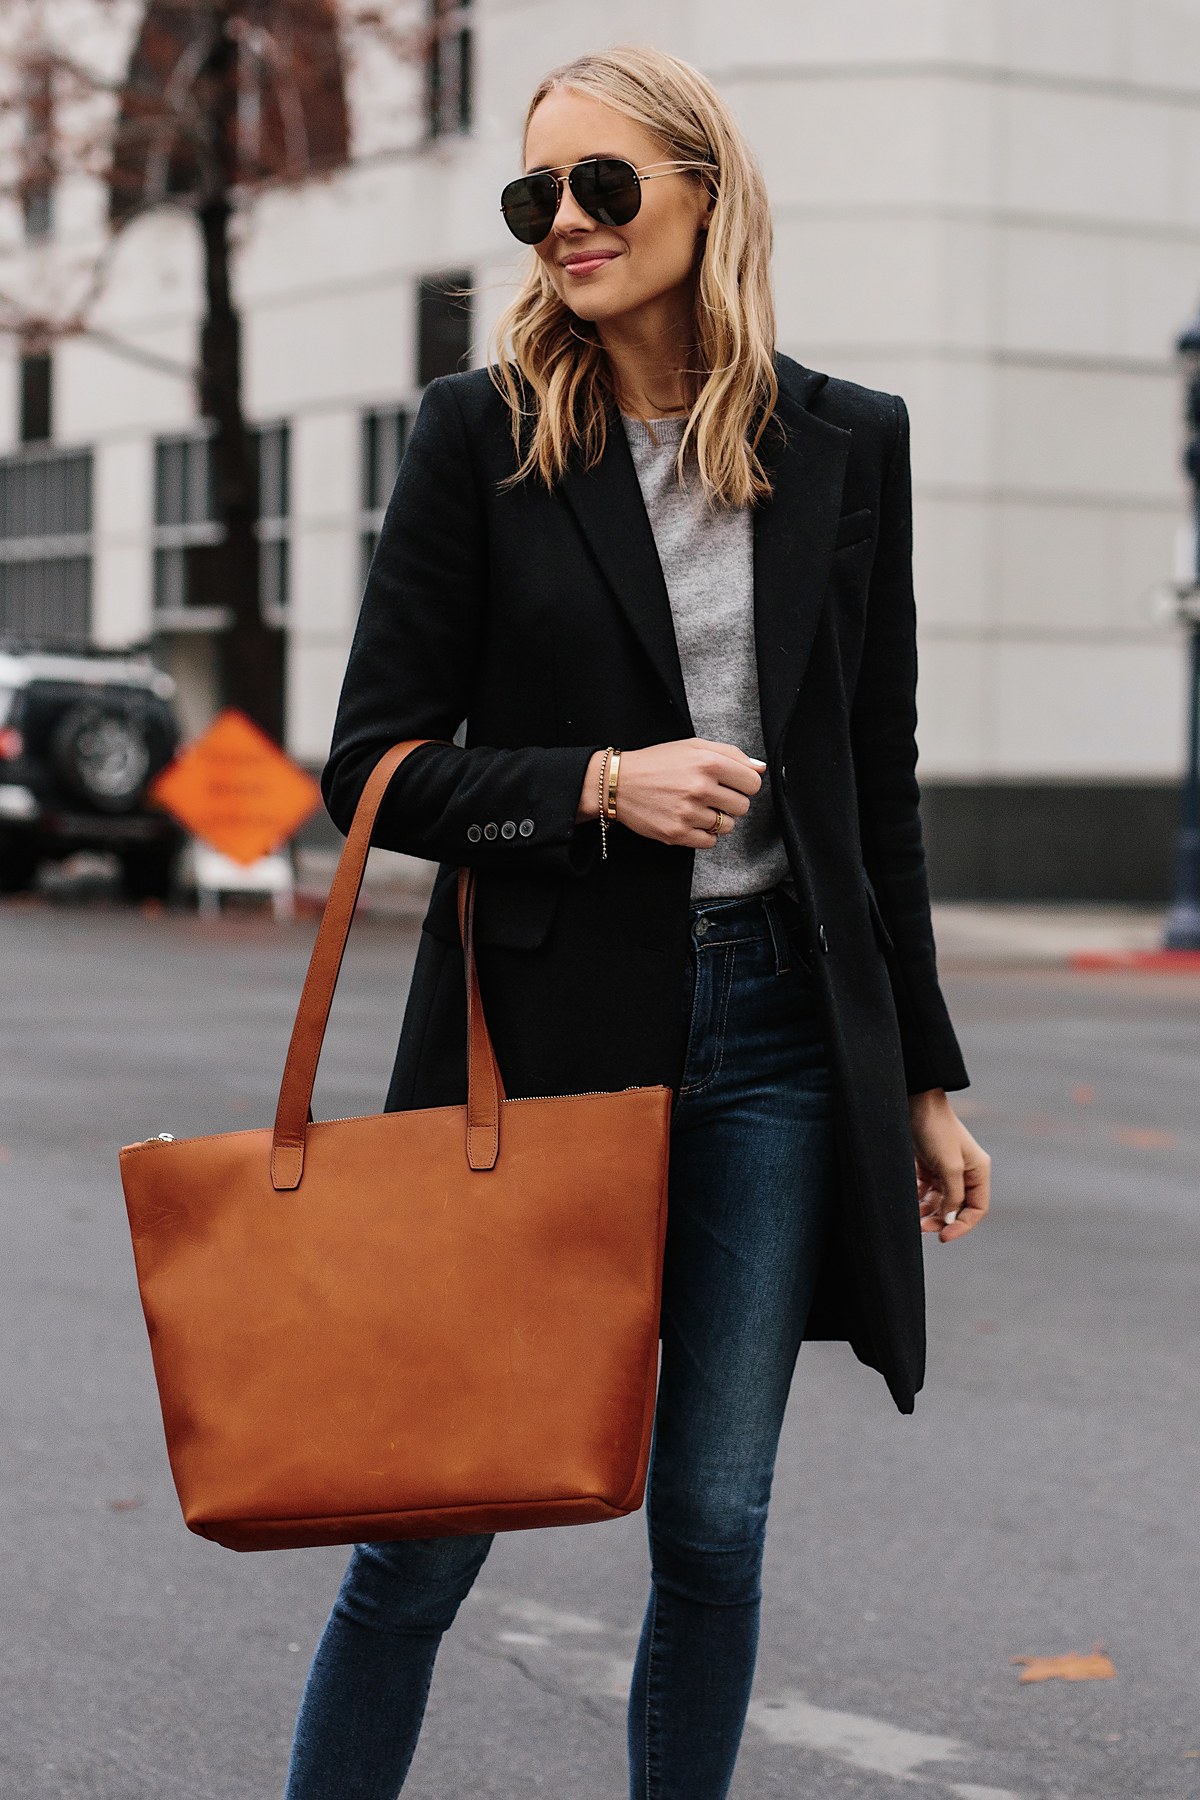 Blonde Woman Wearing SLATE Cognac Tote Black Wool Coat Grey Sweater Denim Skinny Jeans Outfit Fashion Jackson San Diego Fashion Blogger Street Style